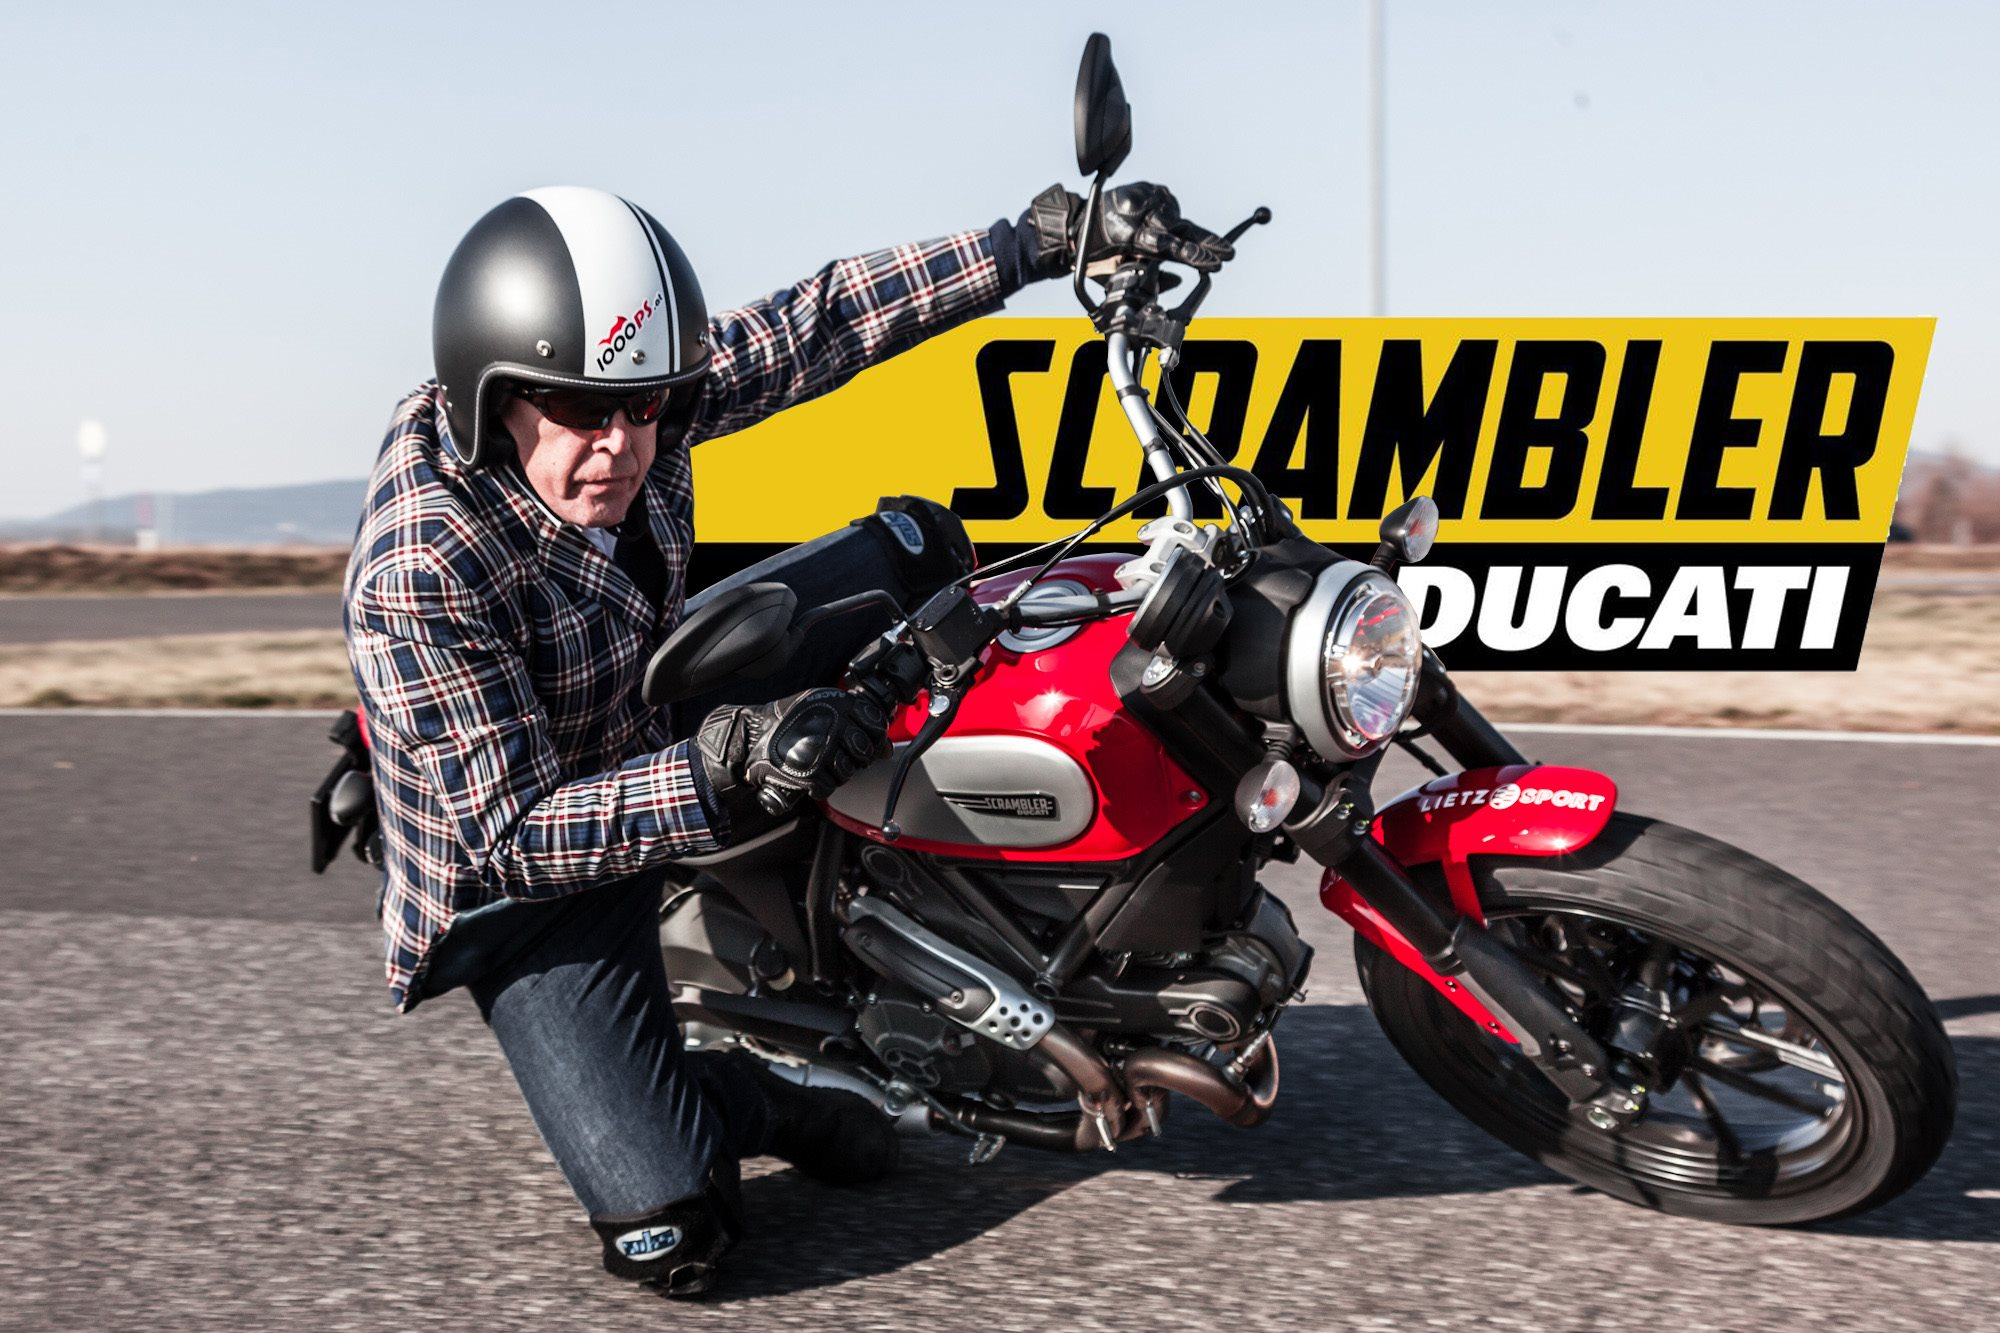 testbericht ducati scrambler 2015 mit zonko. Black Bedroom Furniture Sets. Home Design Ideas